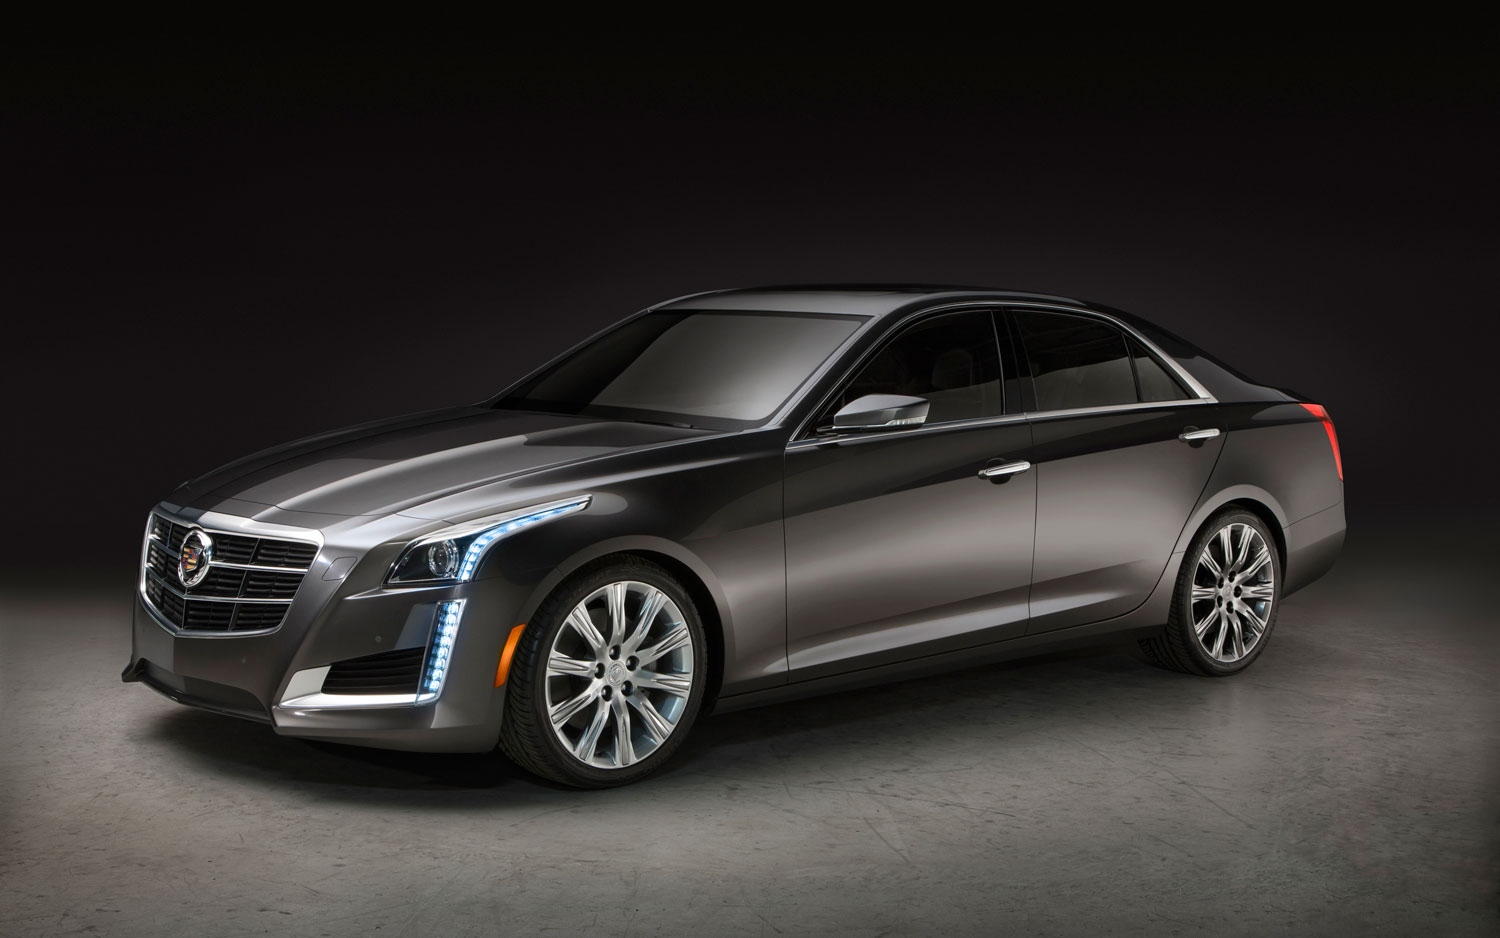 2014 Cadillac CTS Sedan | New cars reviews